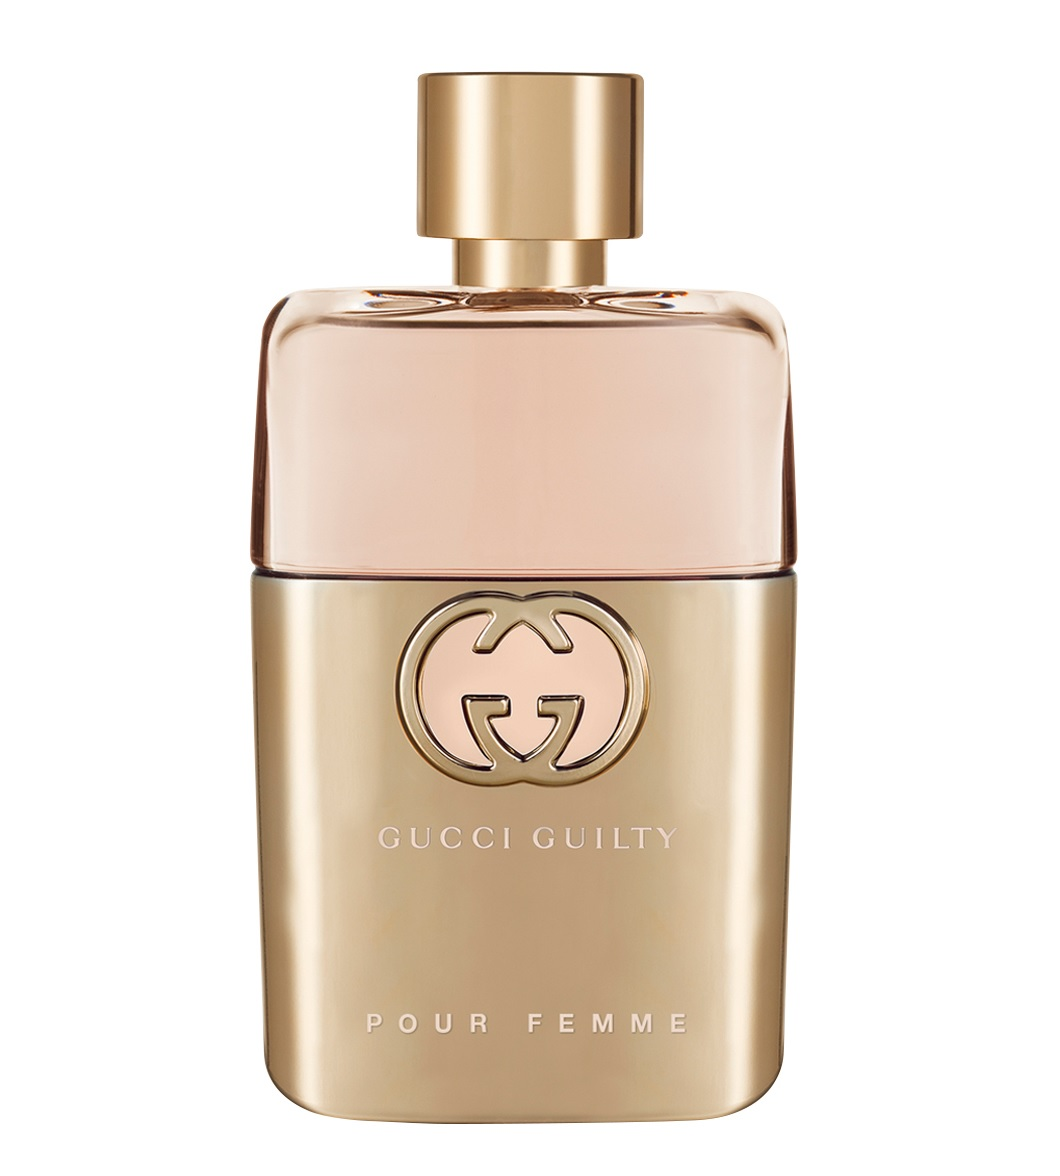 25ea831b362 Gucci Guilty Eau de Parfum Gucci perfume - a new fragrance for women ...